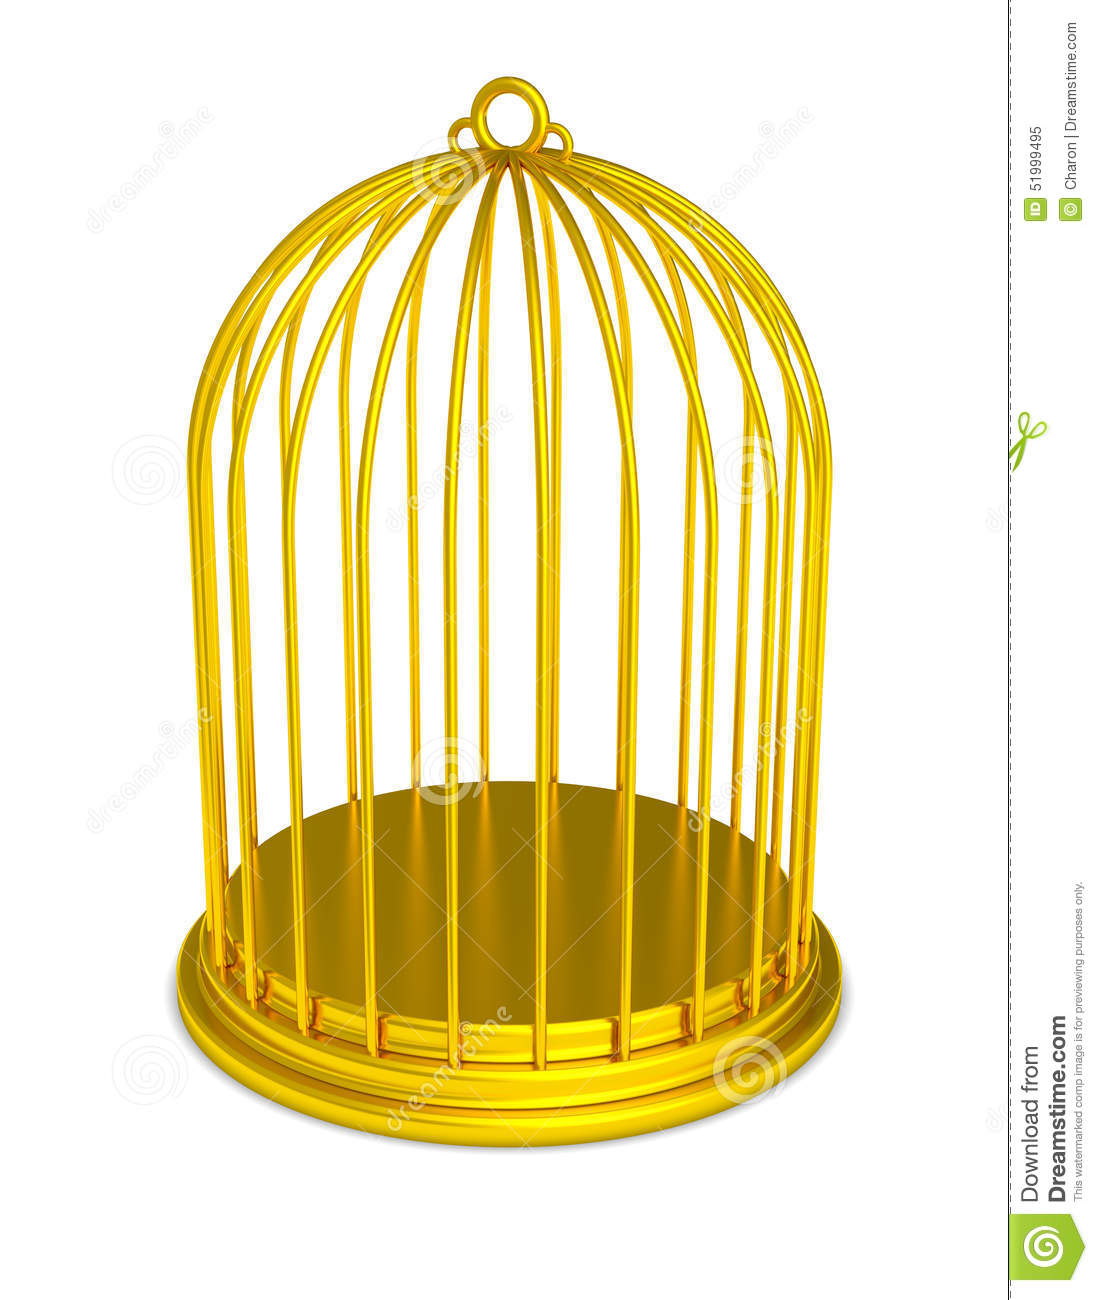 golden birdcage gold prison isolated stock image open jail cell clipart Jail Cell Door Clip Art